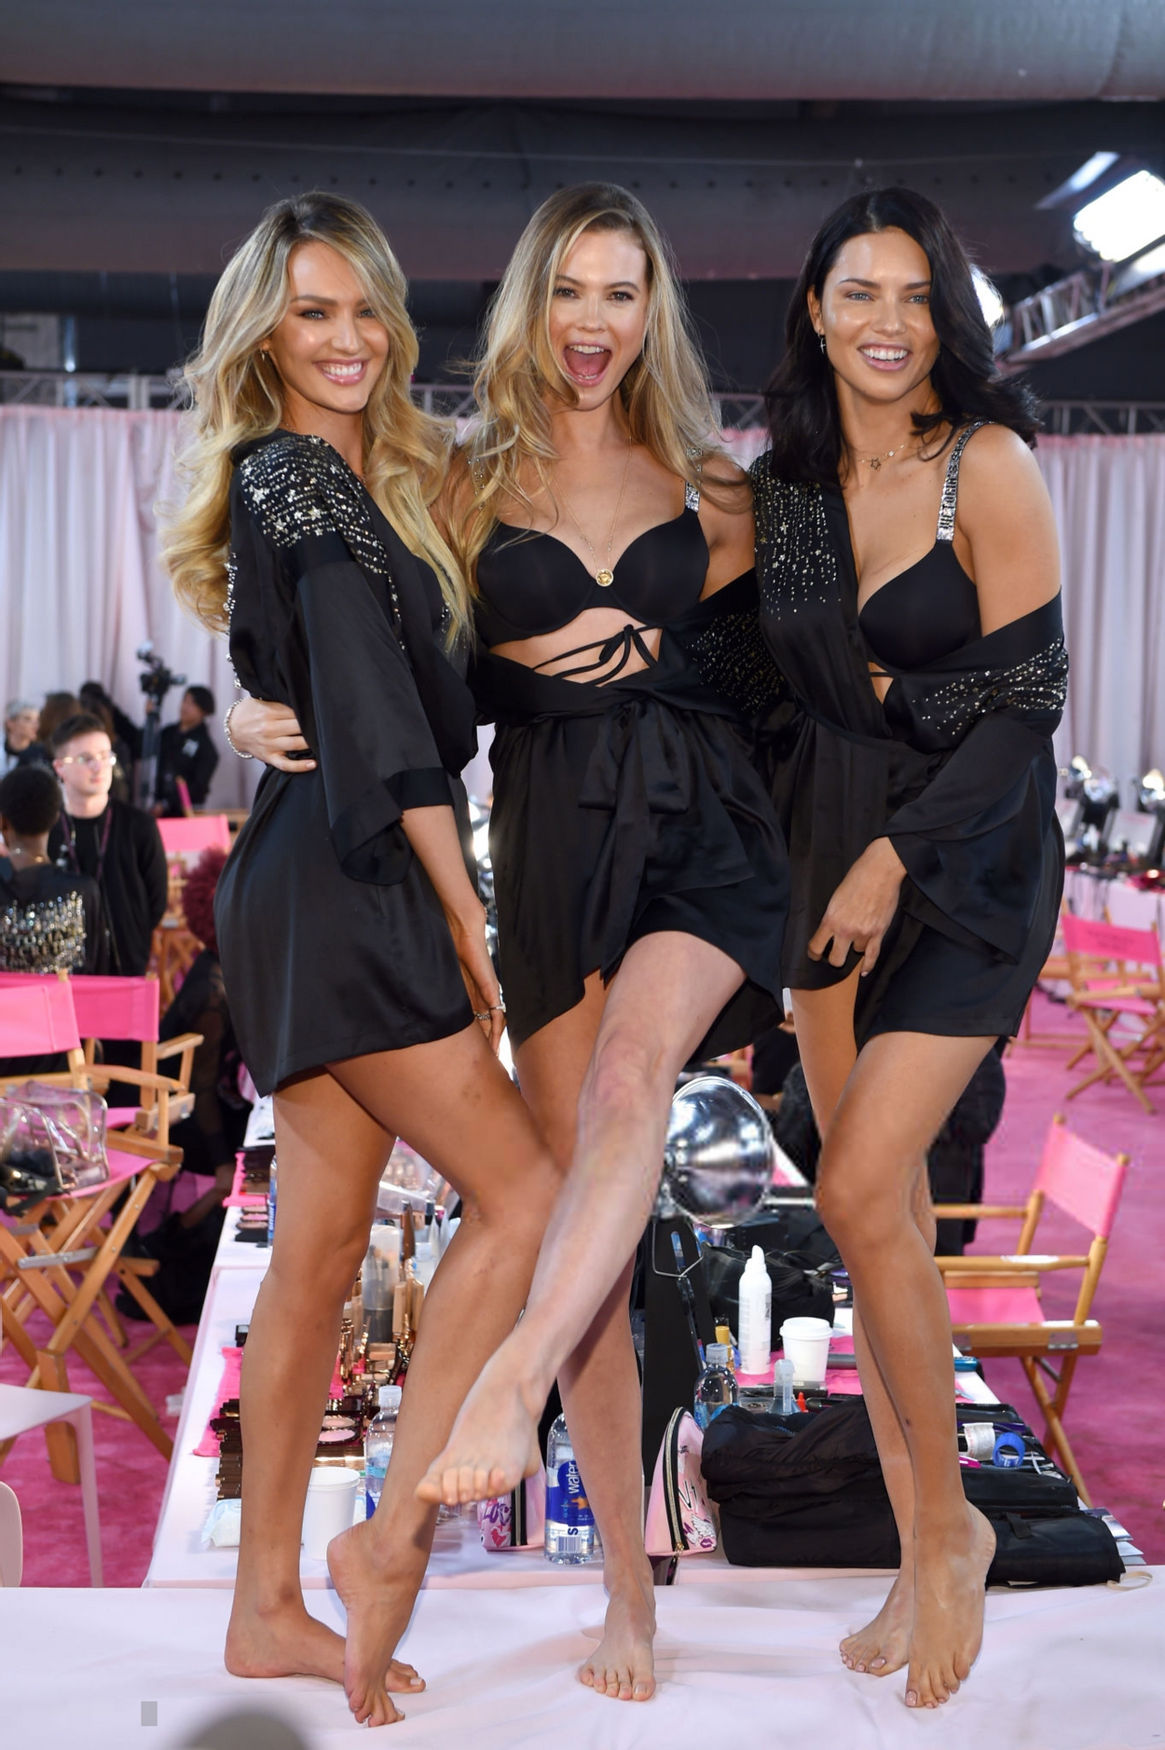 Adriana Lima, with Behati Prinsloo and Candice Swanepoel, backstage at the vsfs 2018, NYC, 8/11/ ...